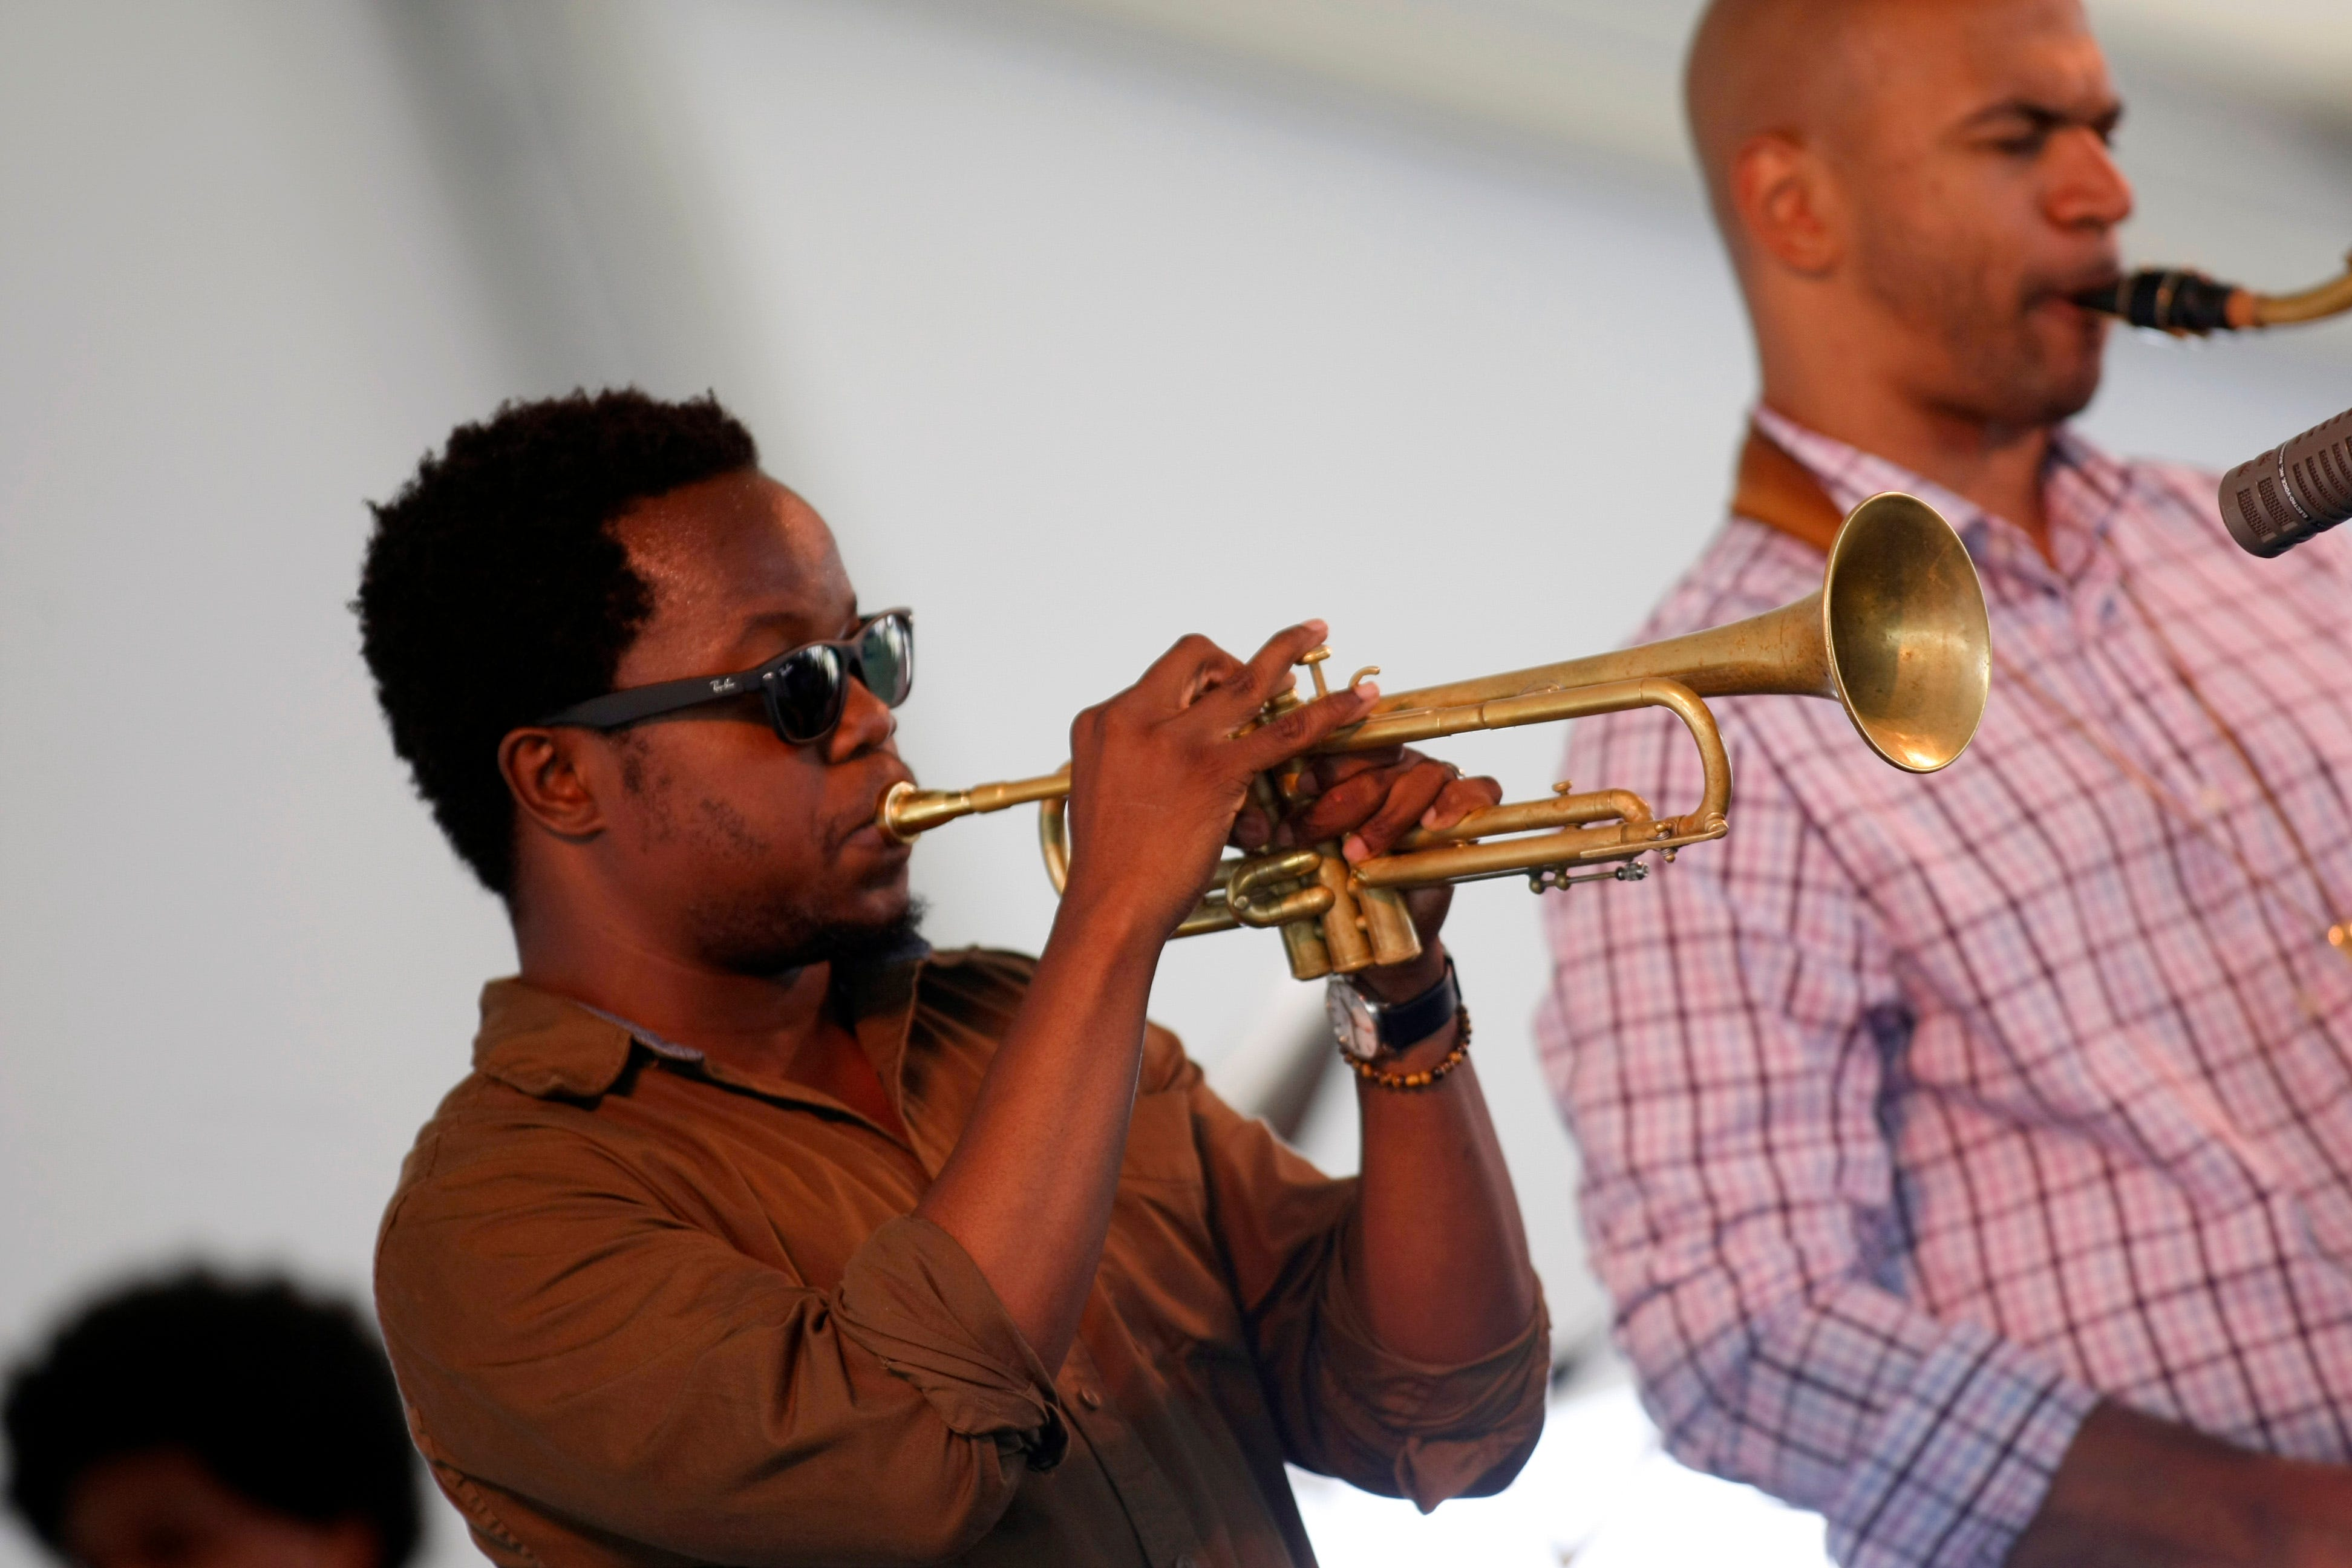 Ambrose Akinmusire performs with his quartet at  the Newport Jazz Festival in Newport, R.I. on Sunday, Aug. 5, 2012.